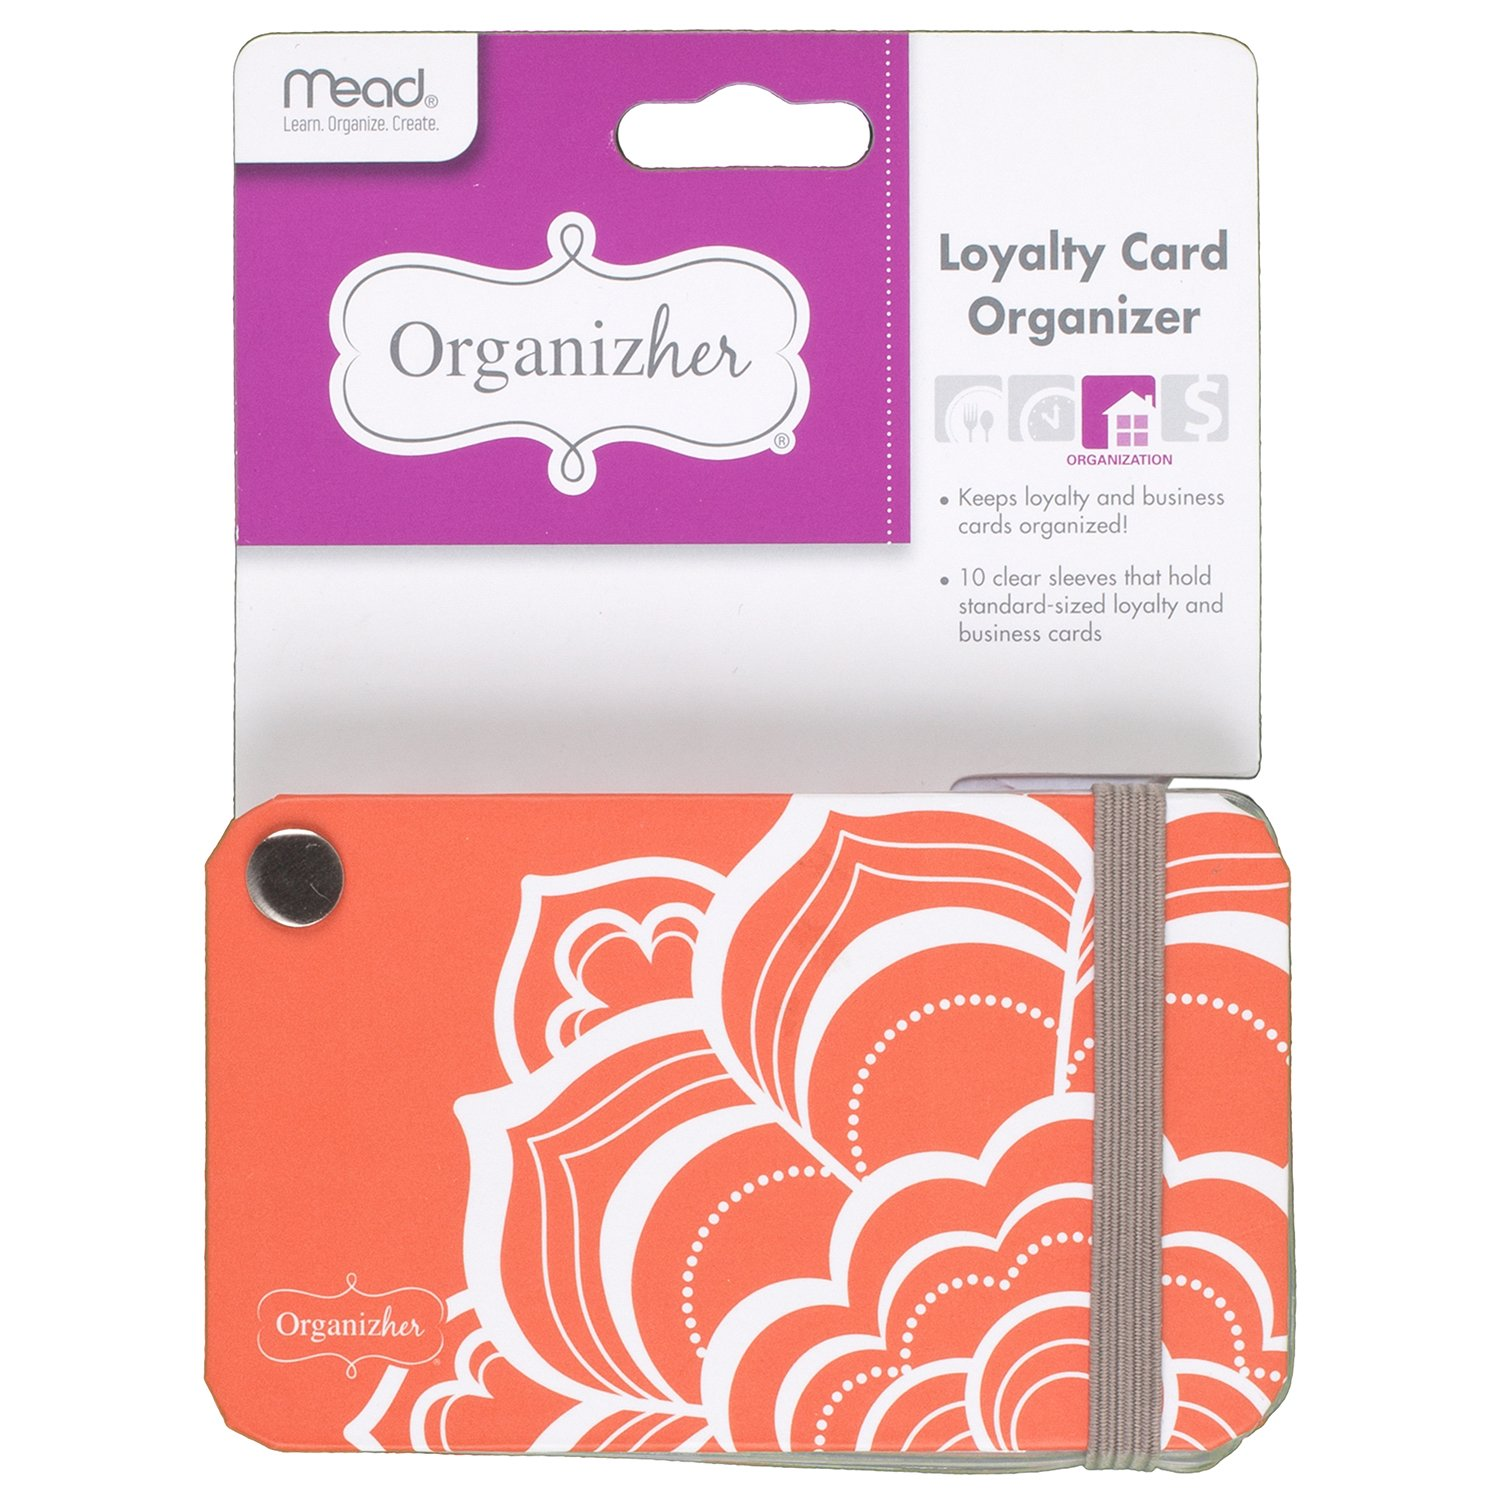 Amazon.com : Mead Organizher Loyalty Card Organizer, 2-1/2\